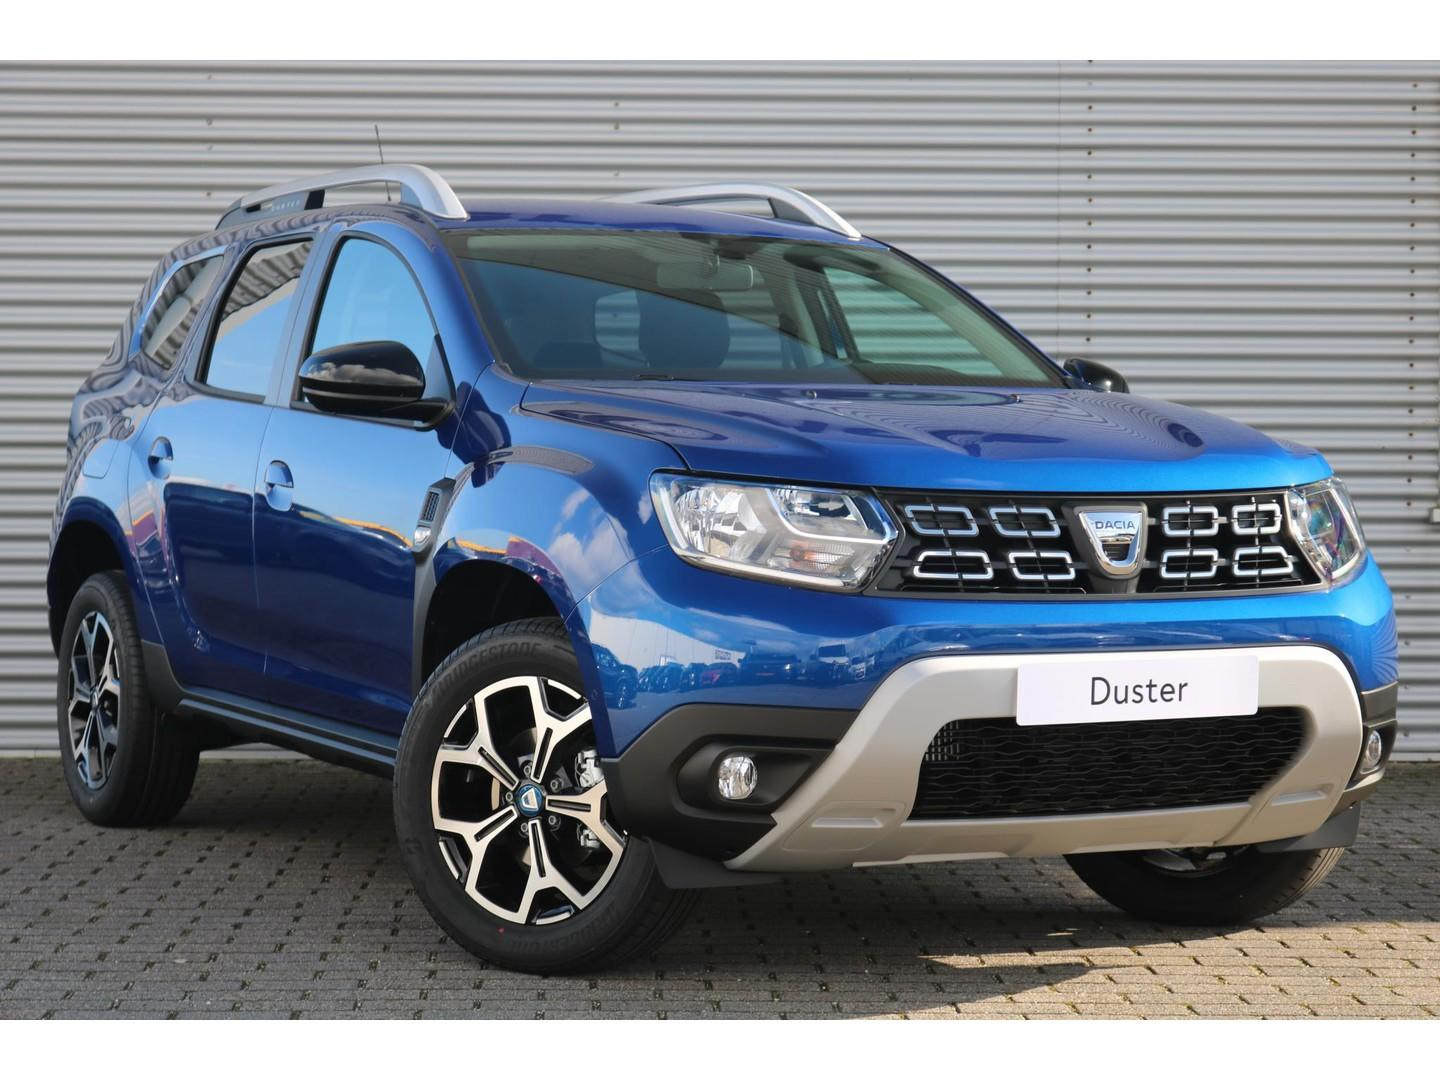 Dacia Duster 1.3 tce serie limitee 15th anniversary